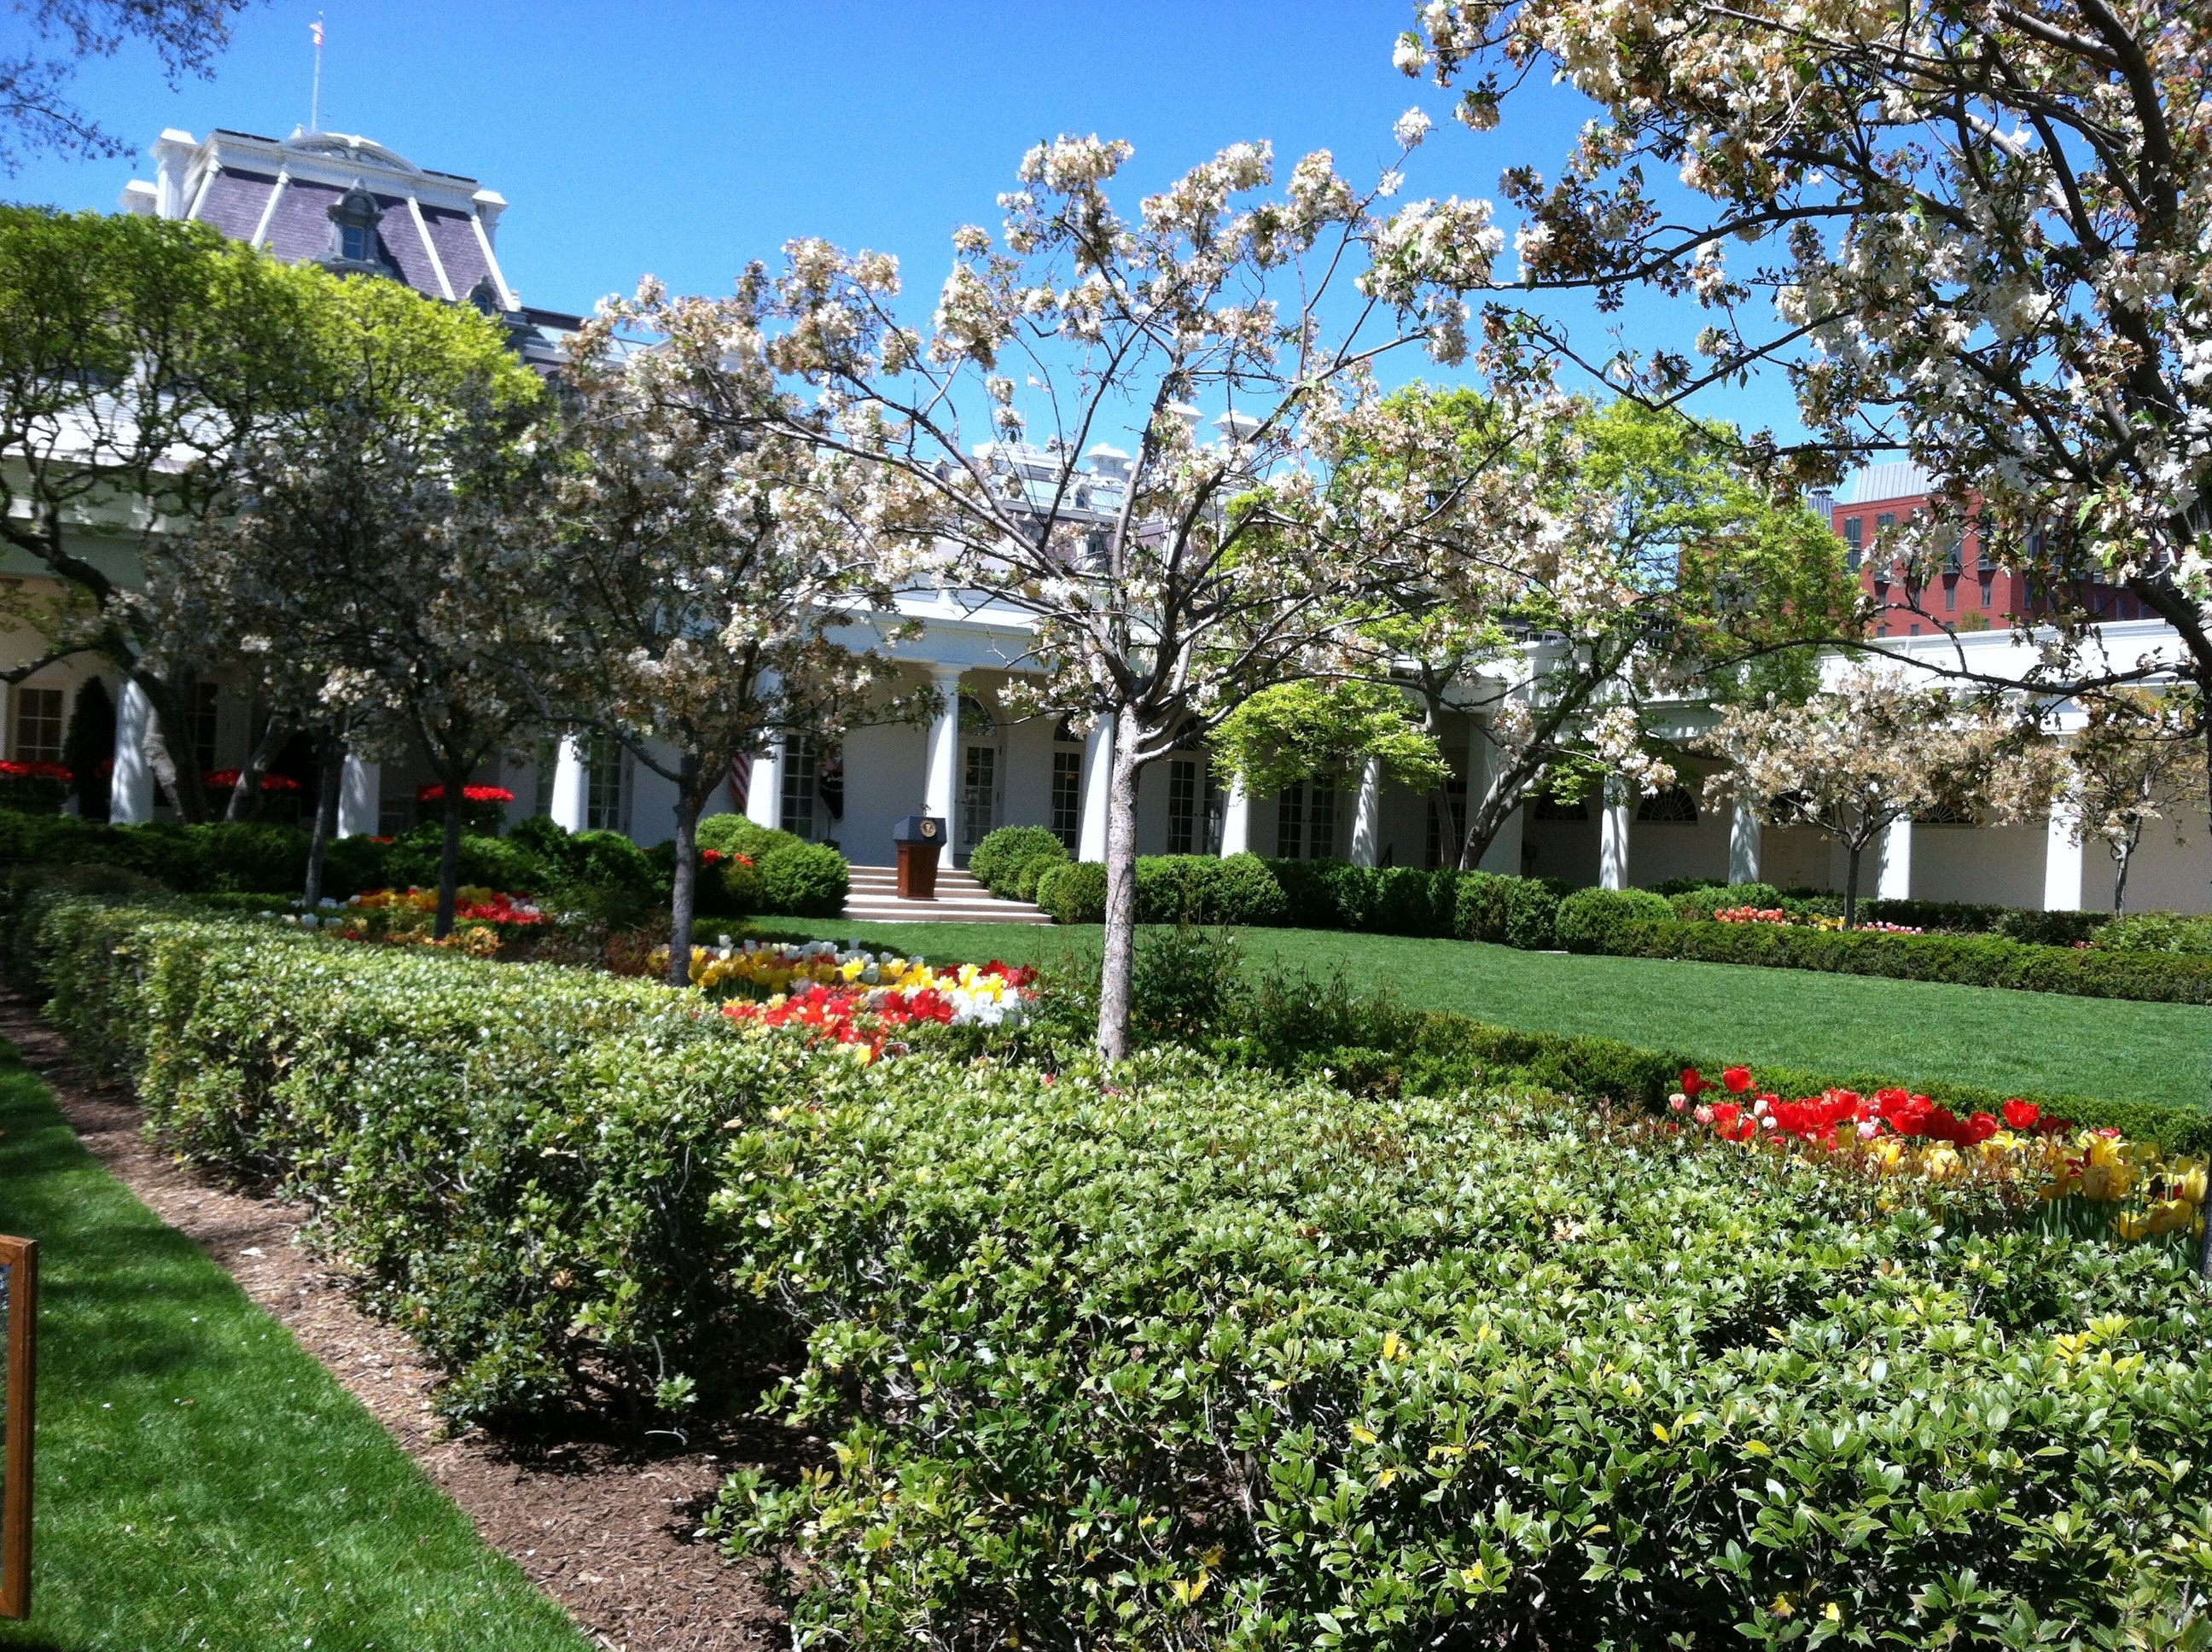 White House Rose Garden - Our Community Now at Virginia